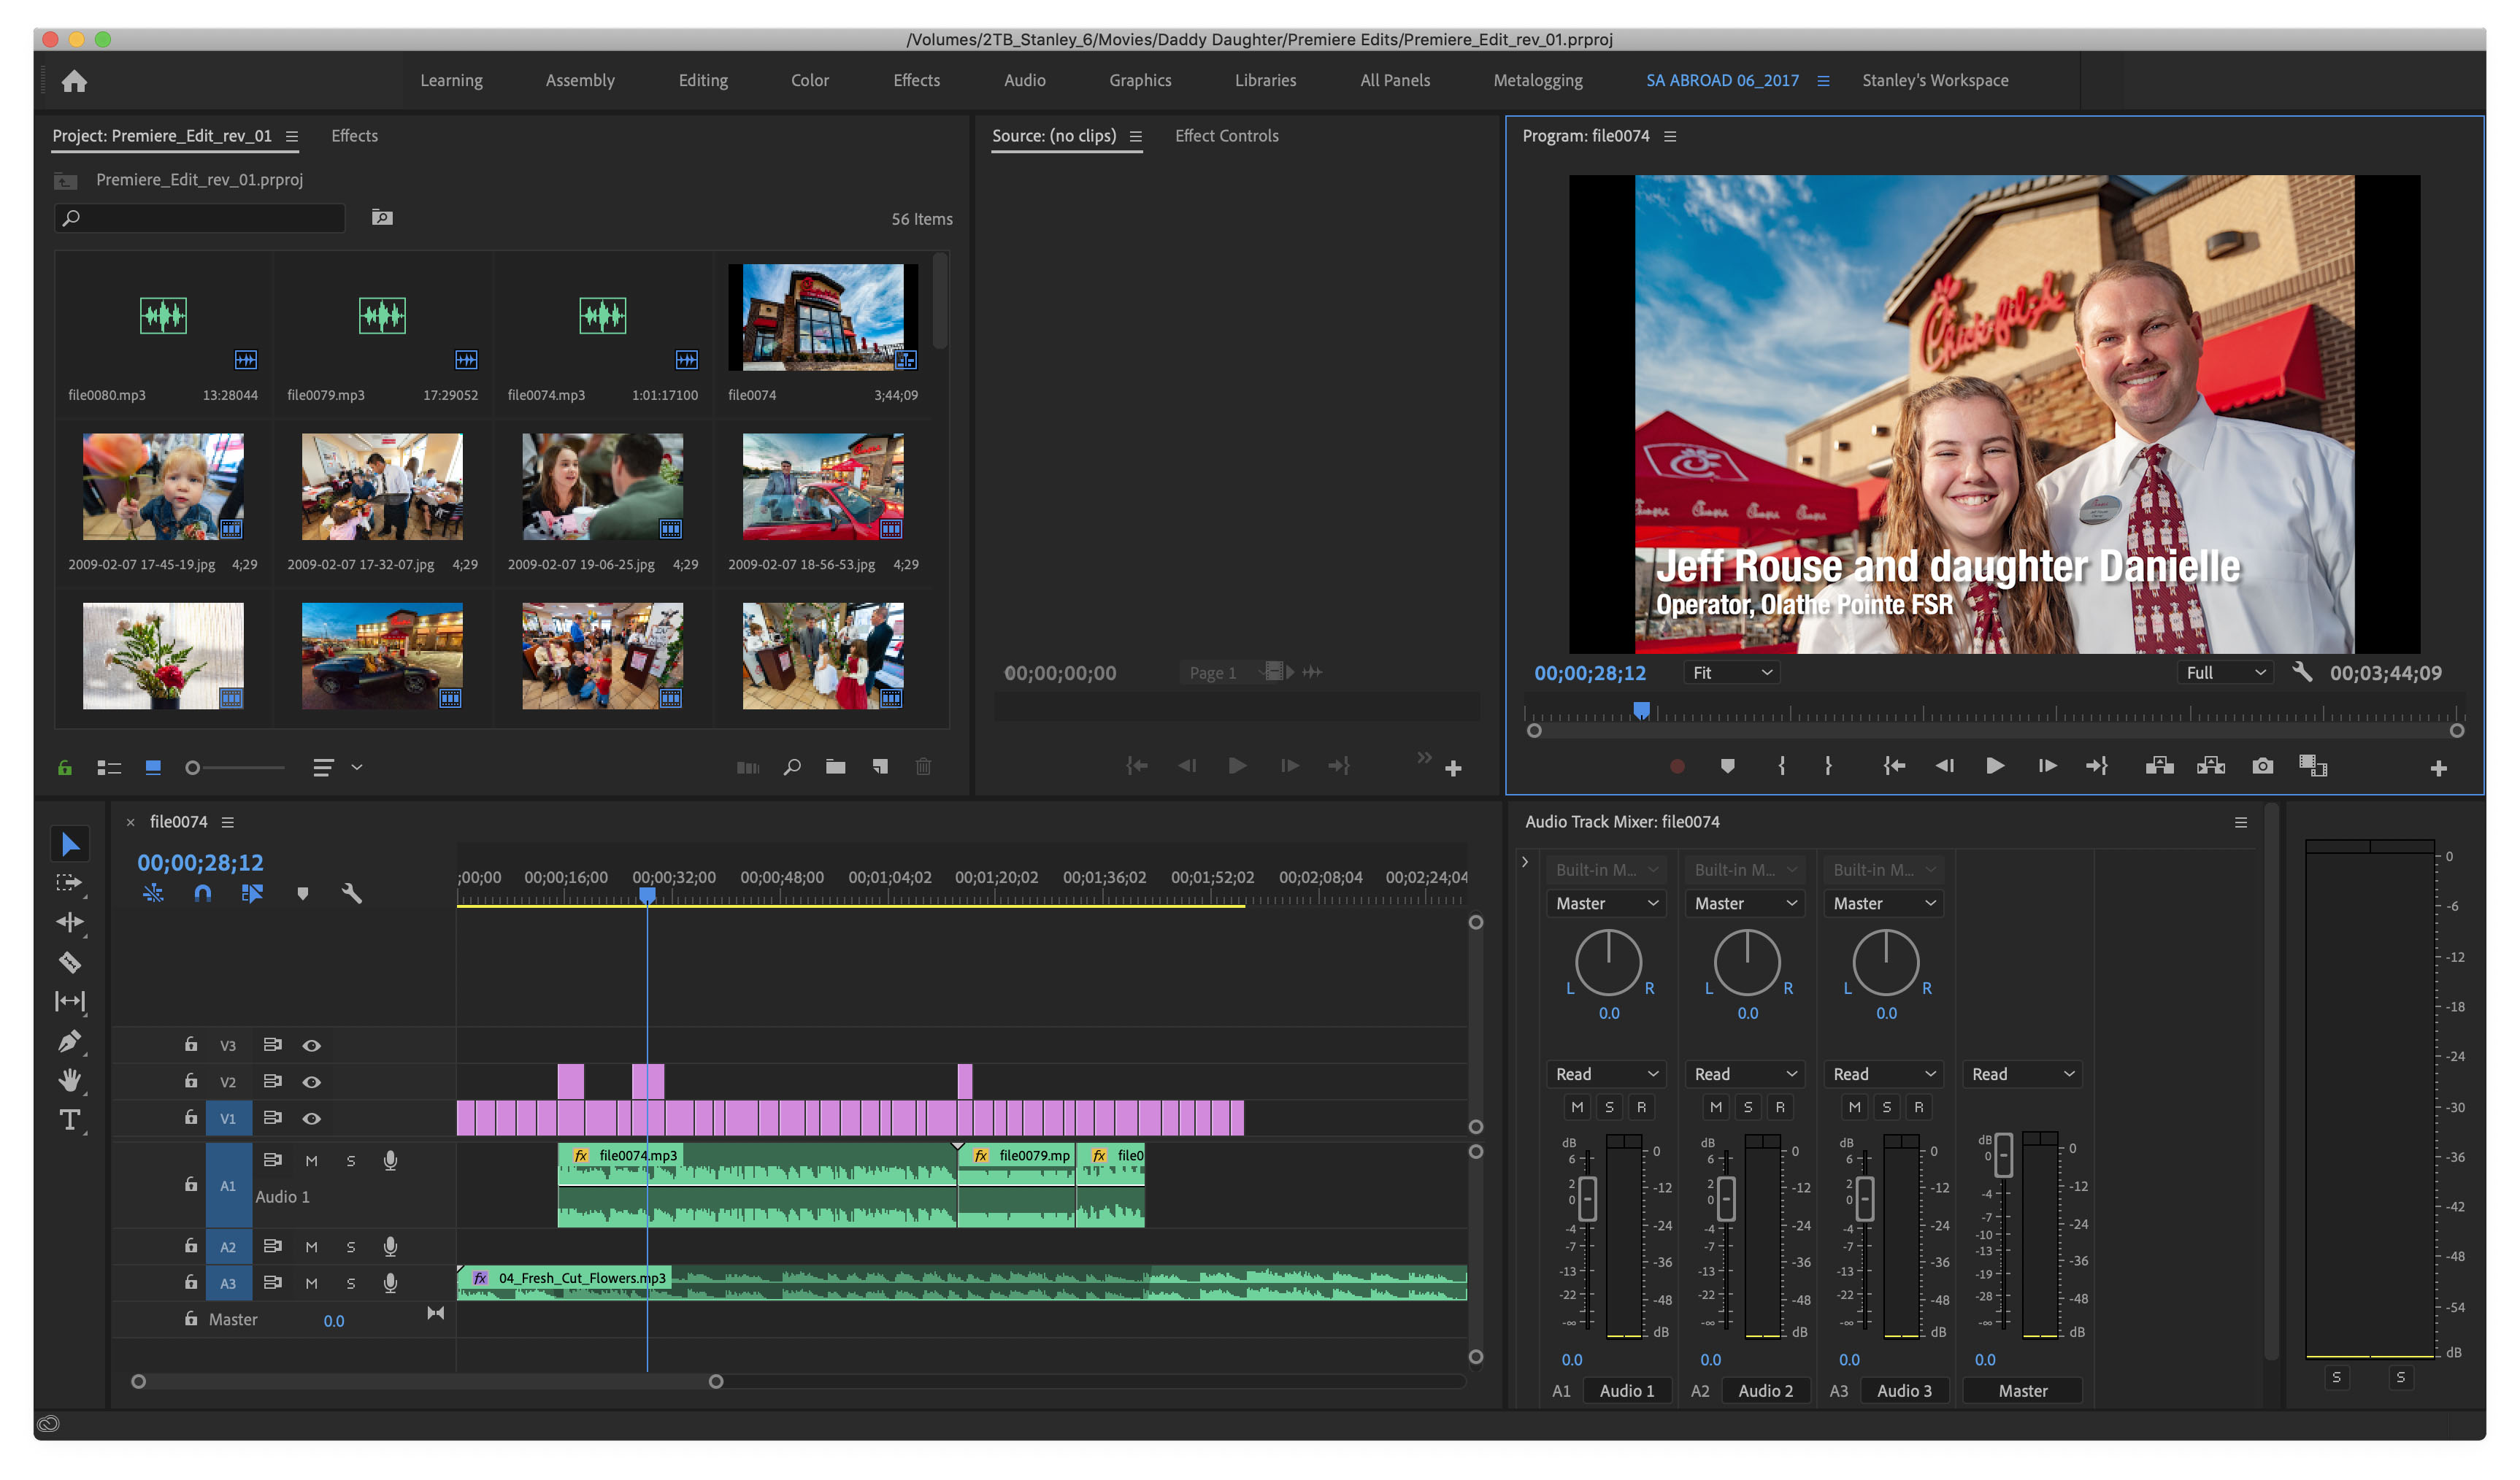 Multimedia Guide using Adobe Premiere Pro